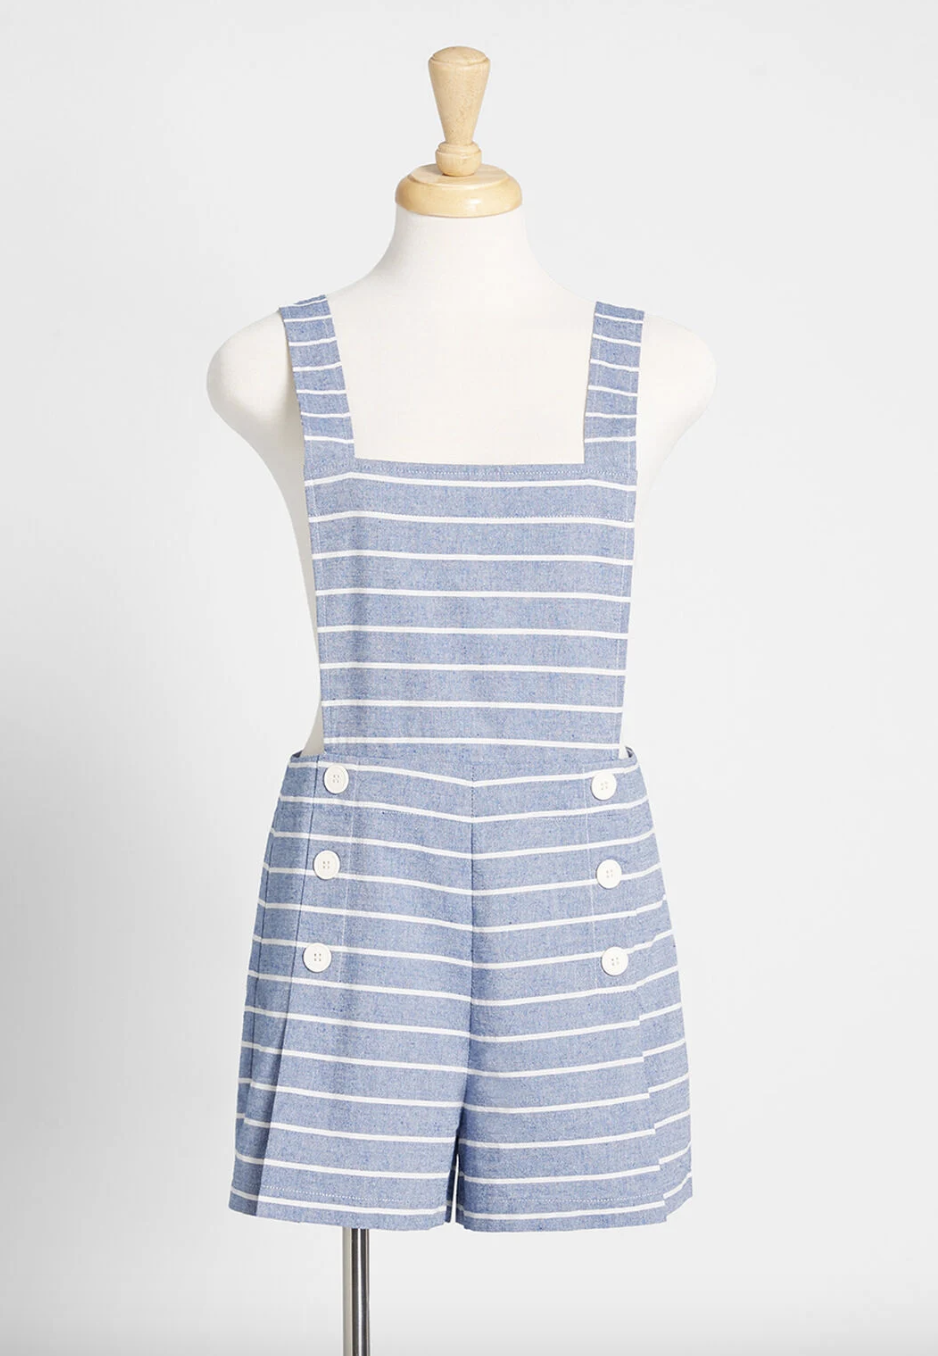 A light blue shortall with thin white horizontal stripes and pockets on the side with three buttons over each of them